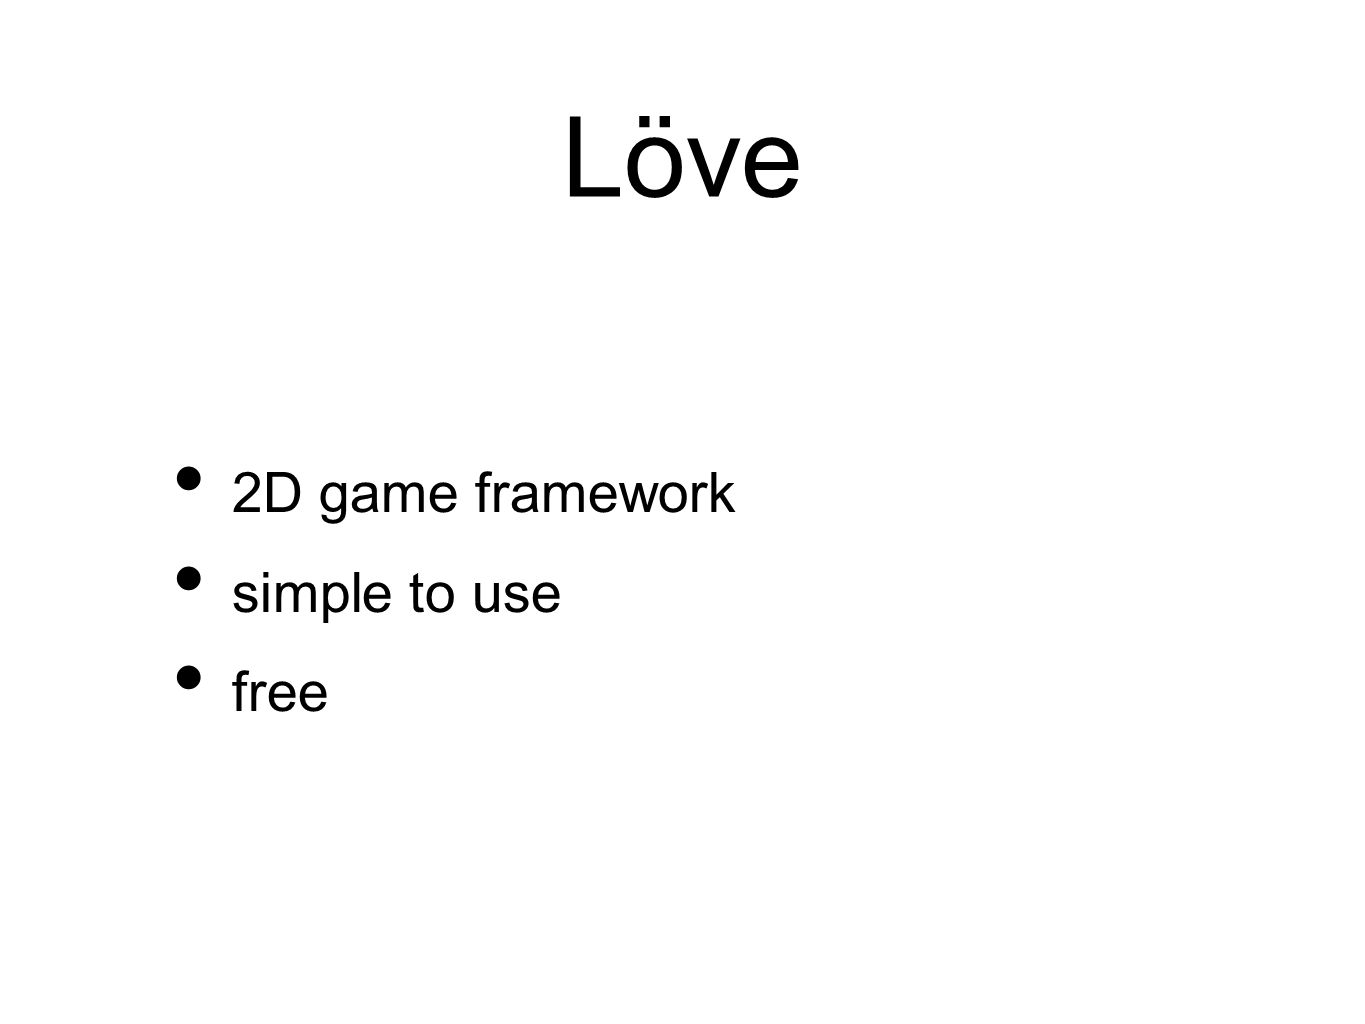 Löve 2D game framework simple to use free